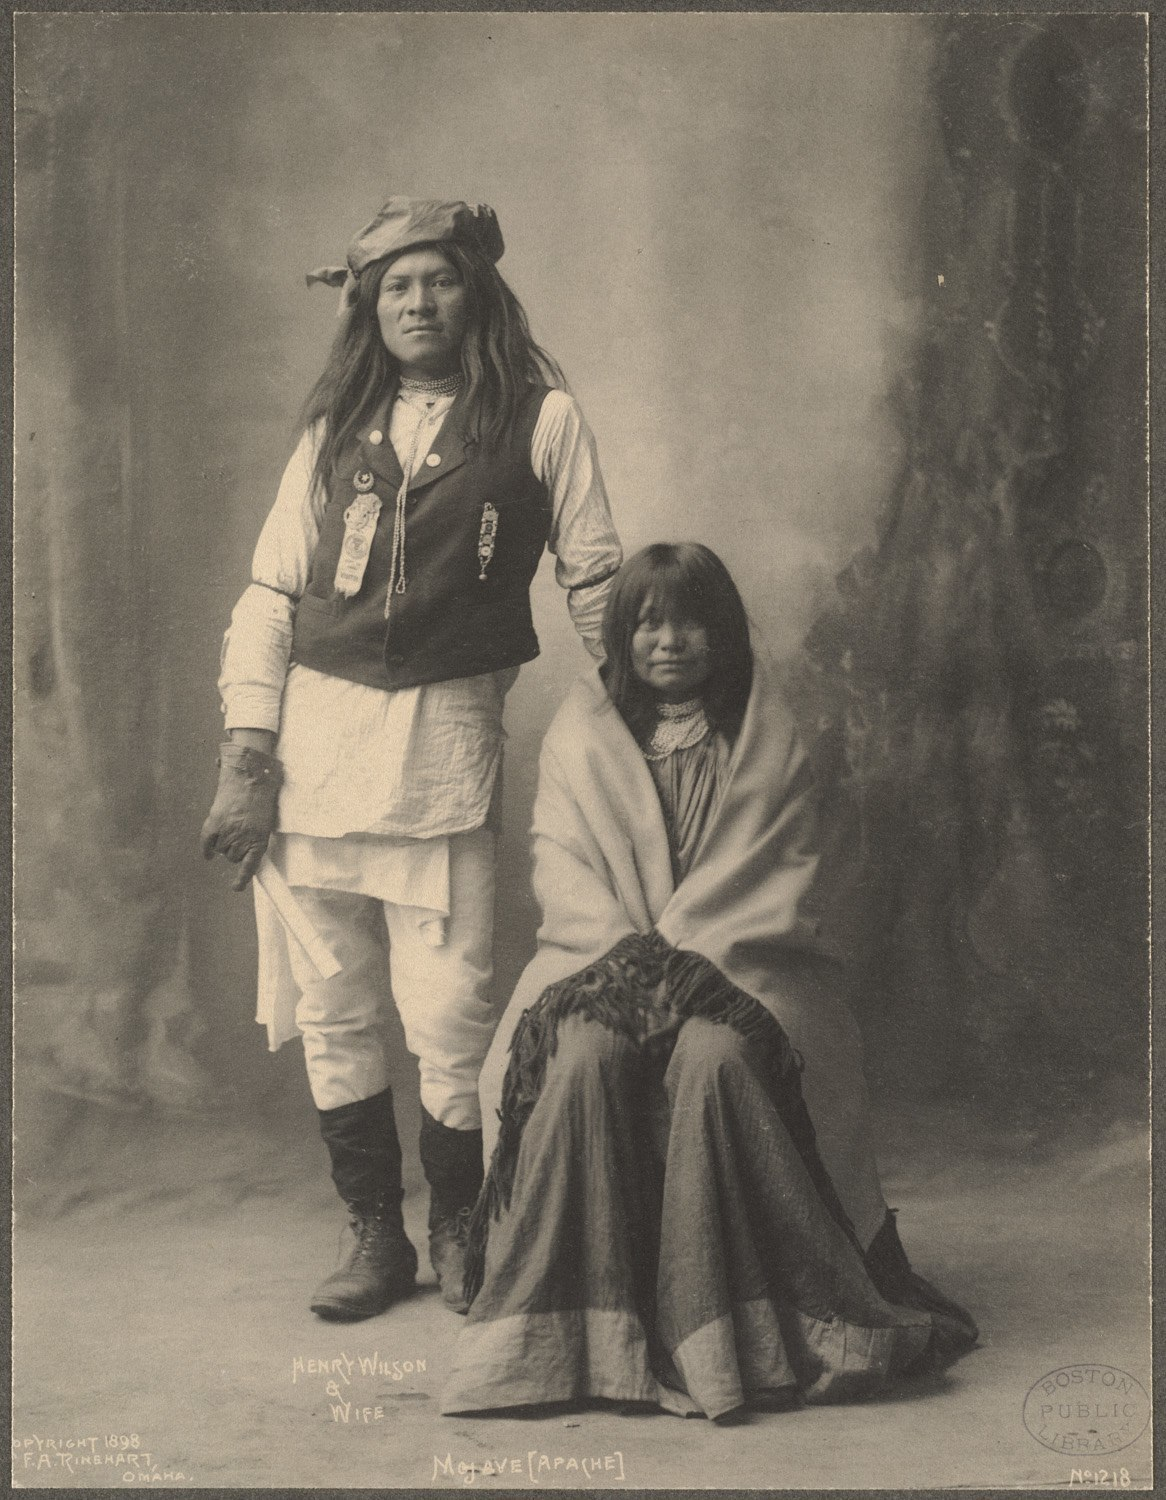 Henry Wilson & Wife, Mojave (Apache), 1899. (Photo by Frank A. Rinehart)